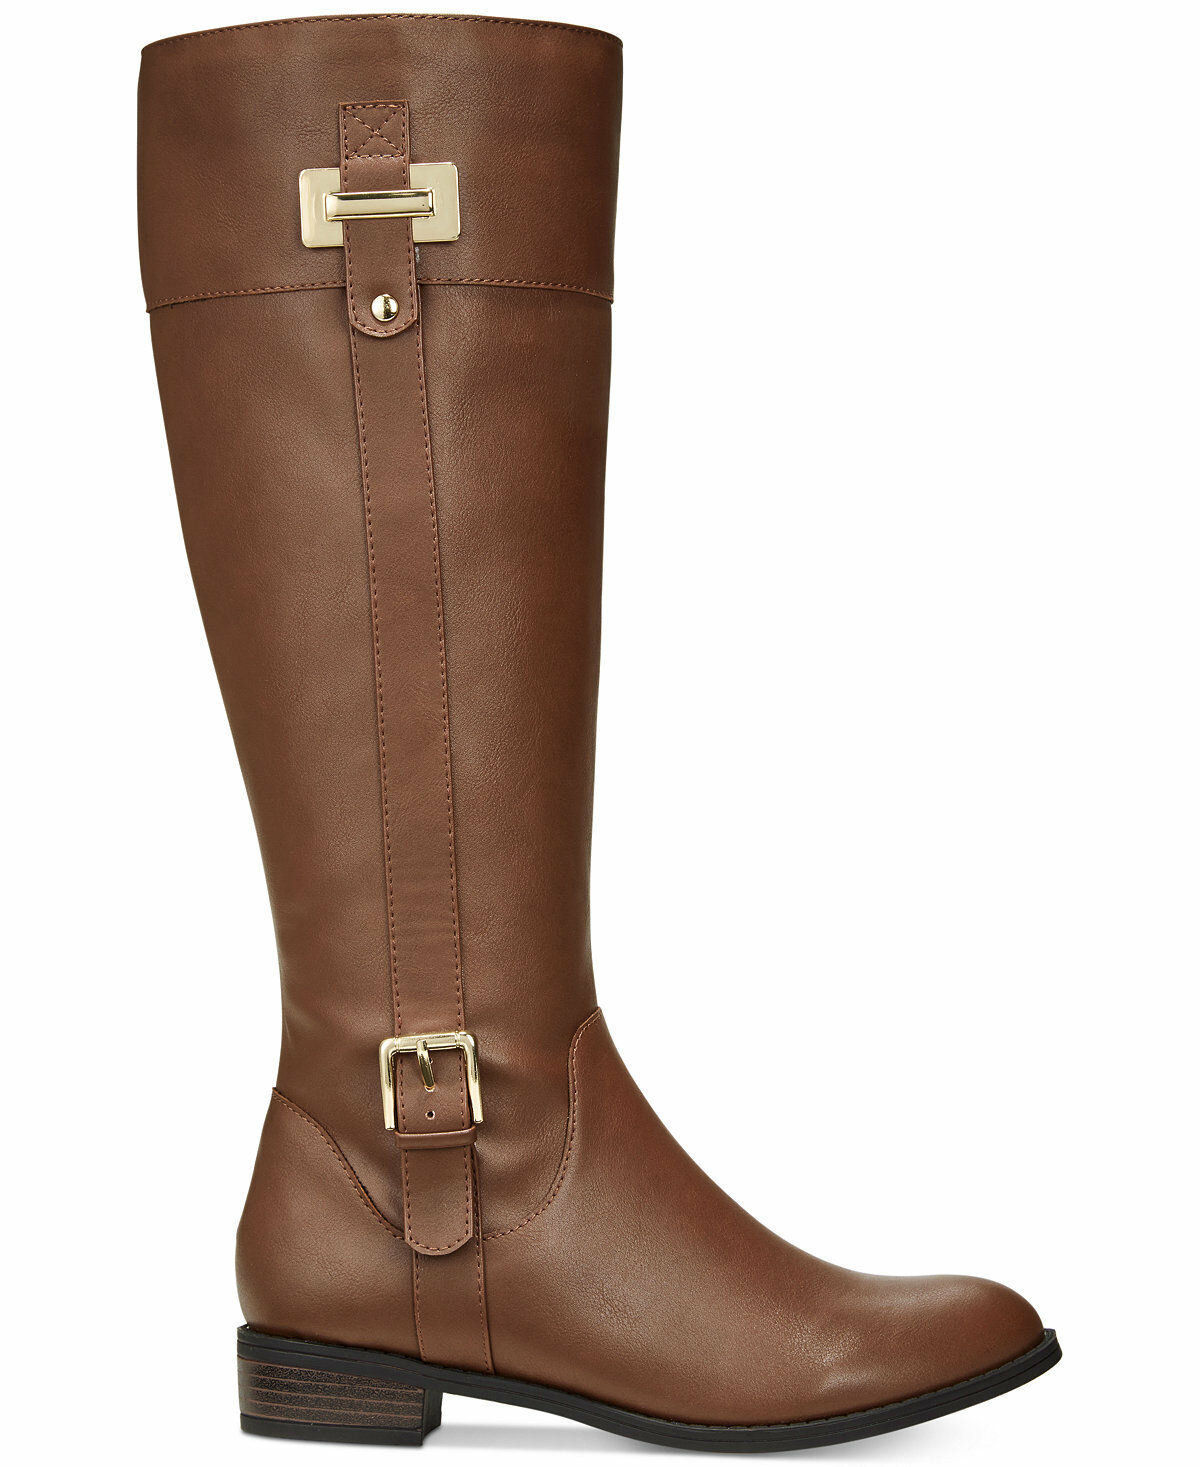 Karen Scott Deliee Womens Synthetic Fashion COGNAC- Knee-High SIZE 9.5M